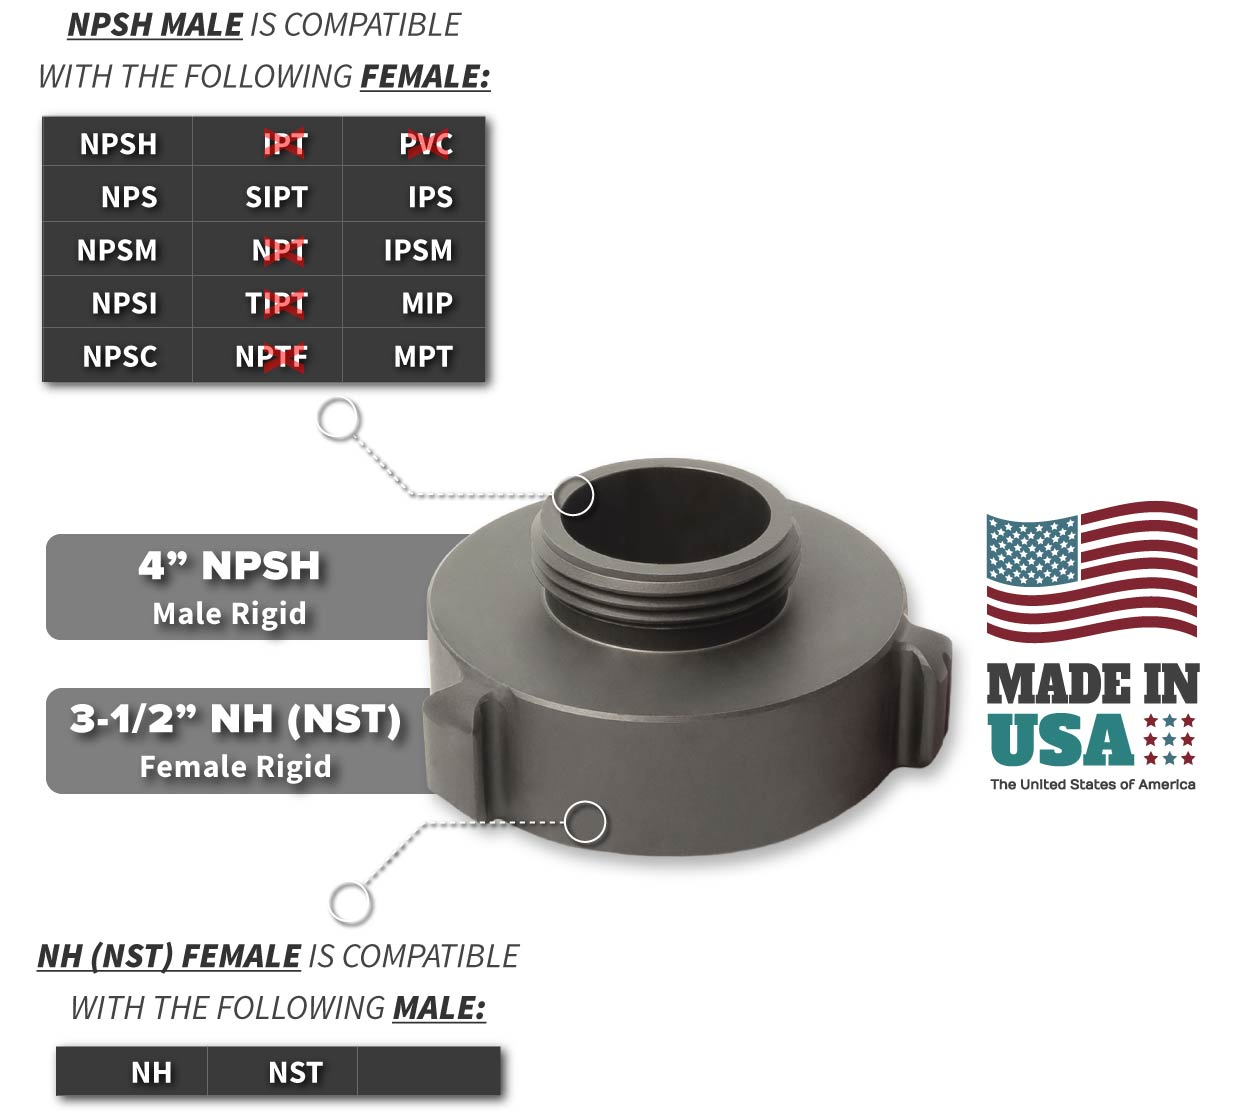 3.5 Inch NH-NST Female x 4 Inch NPSH Male Compatibility Thread Chart